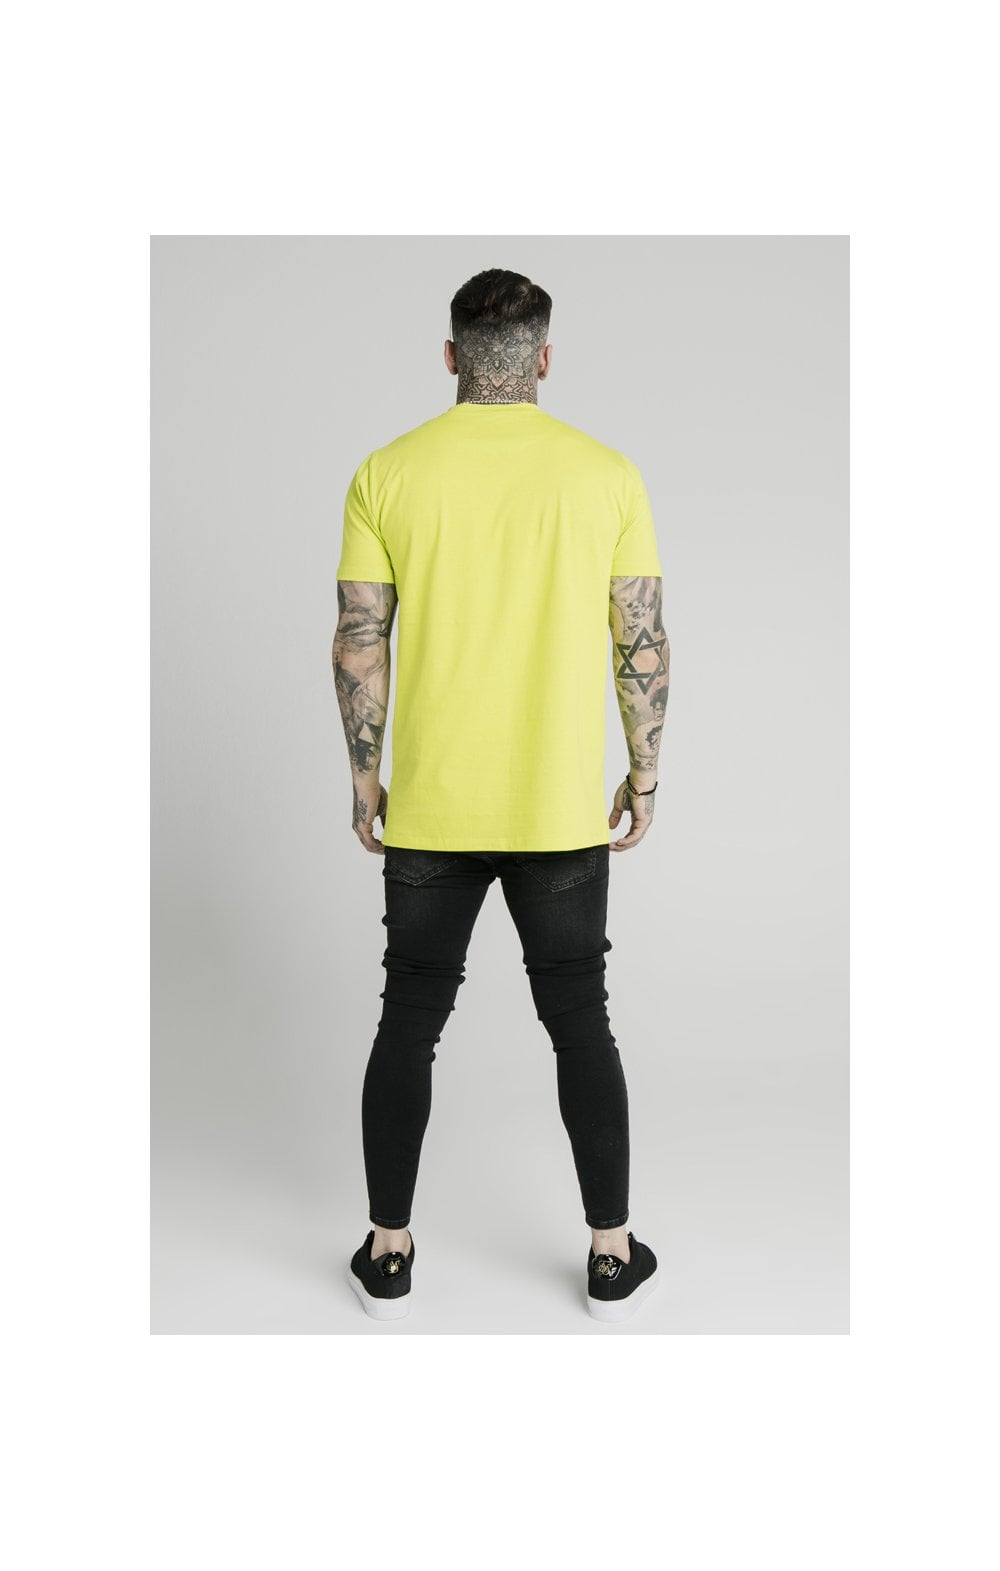 SikSilk S/S Square Hem Tee – Lime (4)